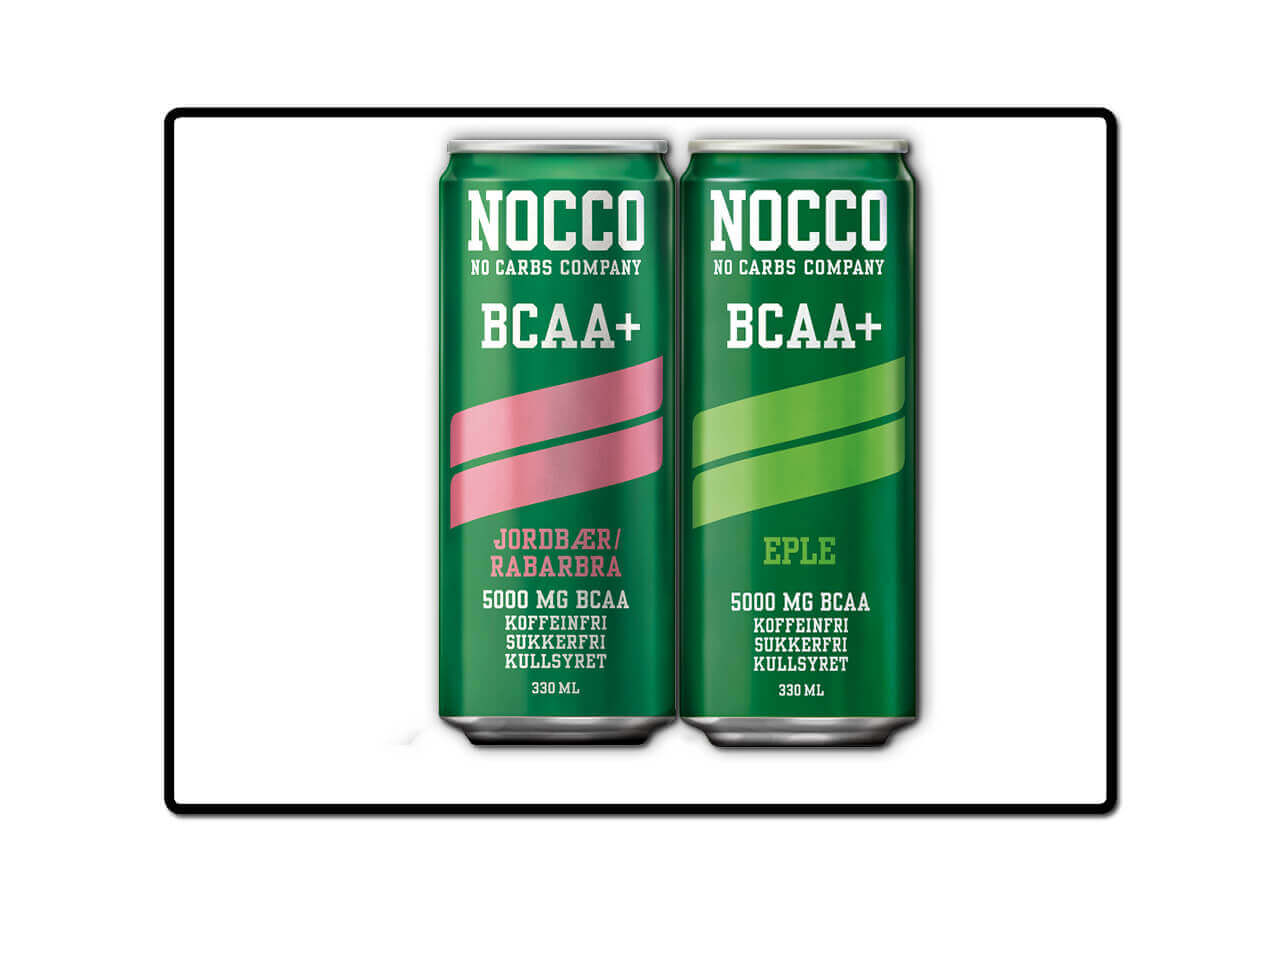 nocco – bcaa+ – alle smaker